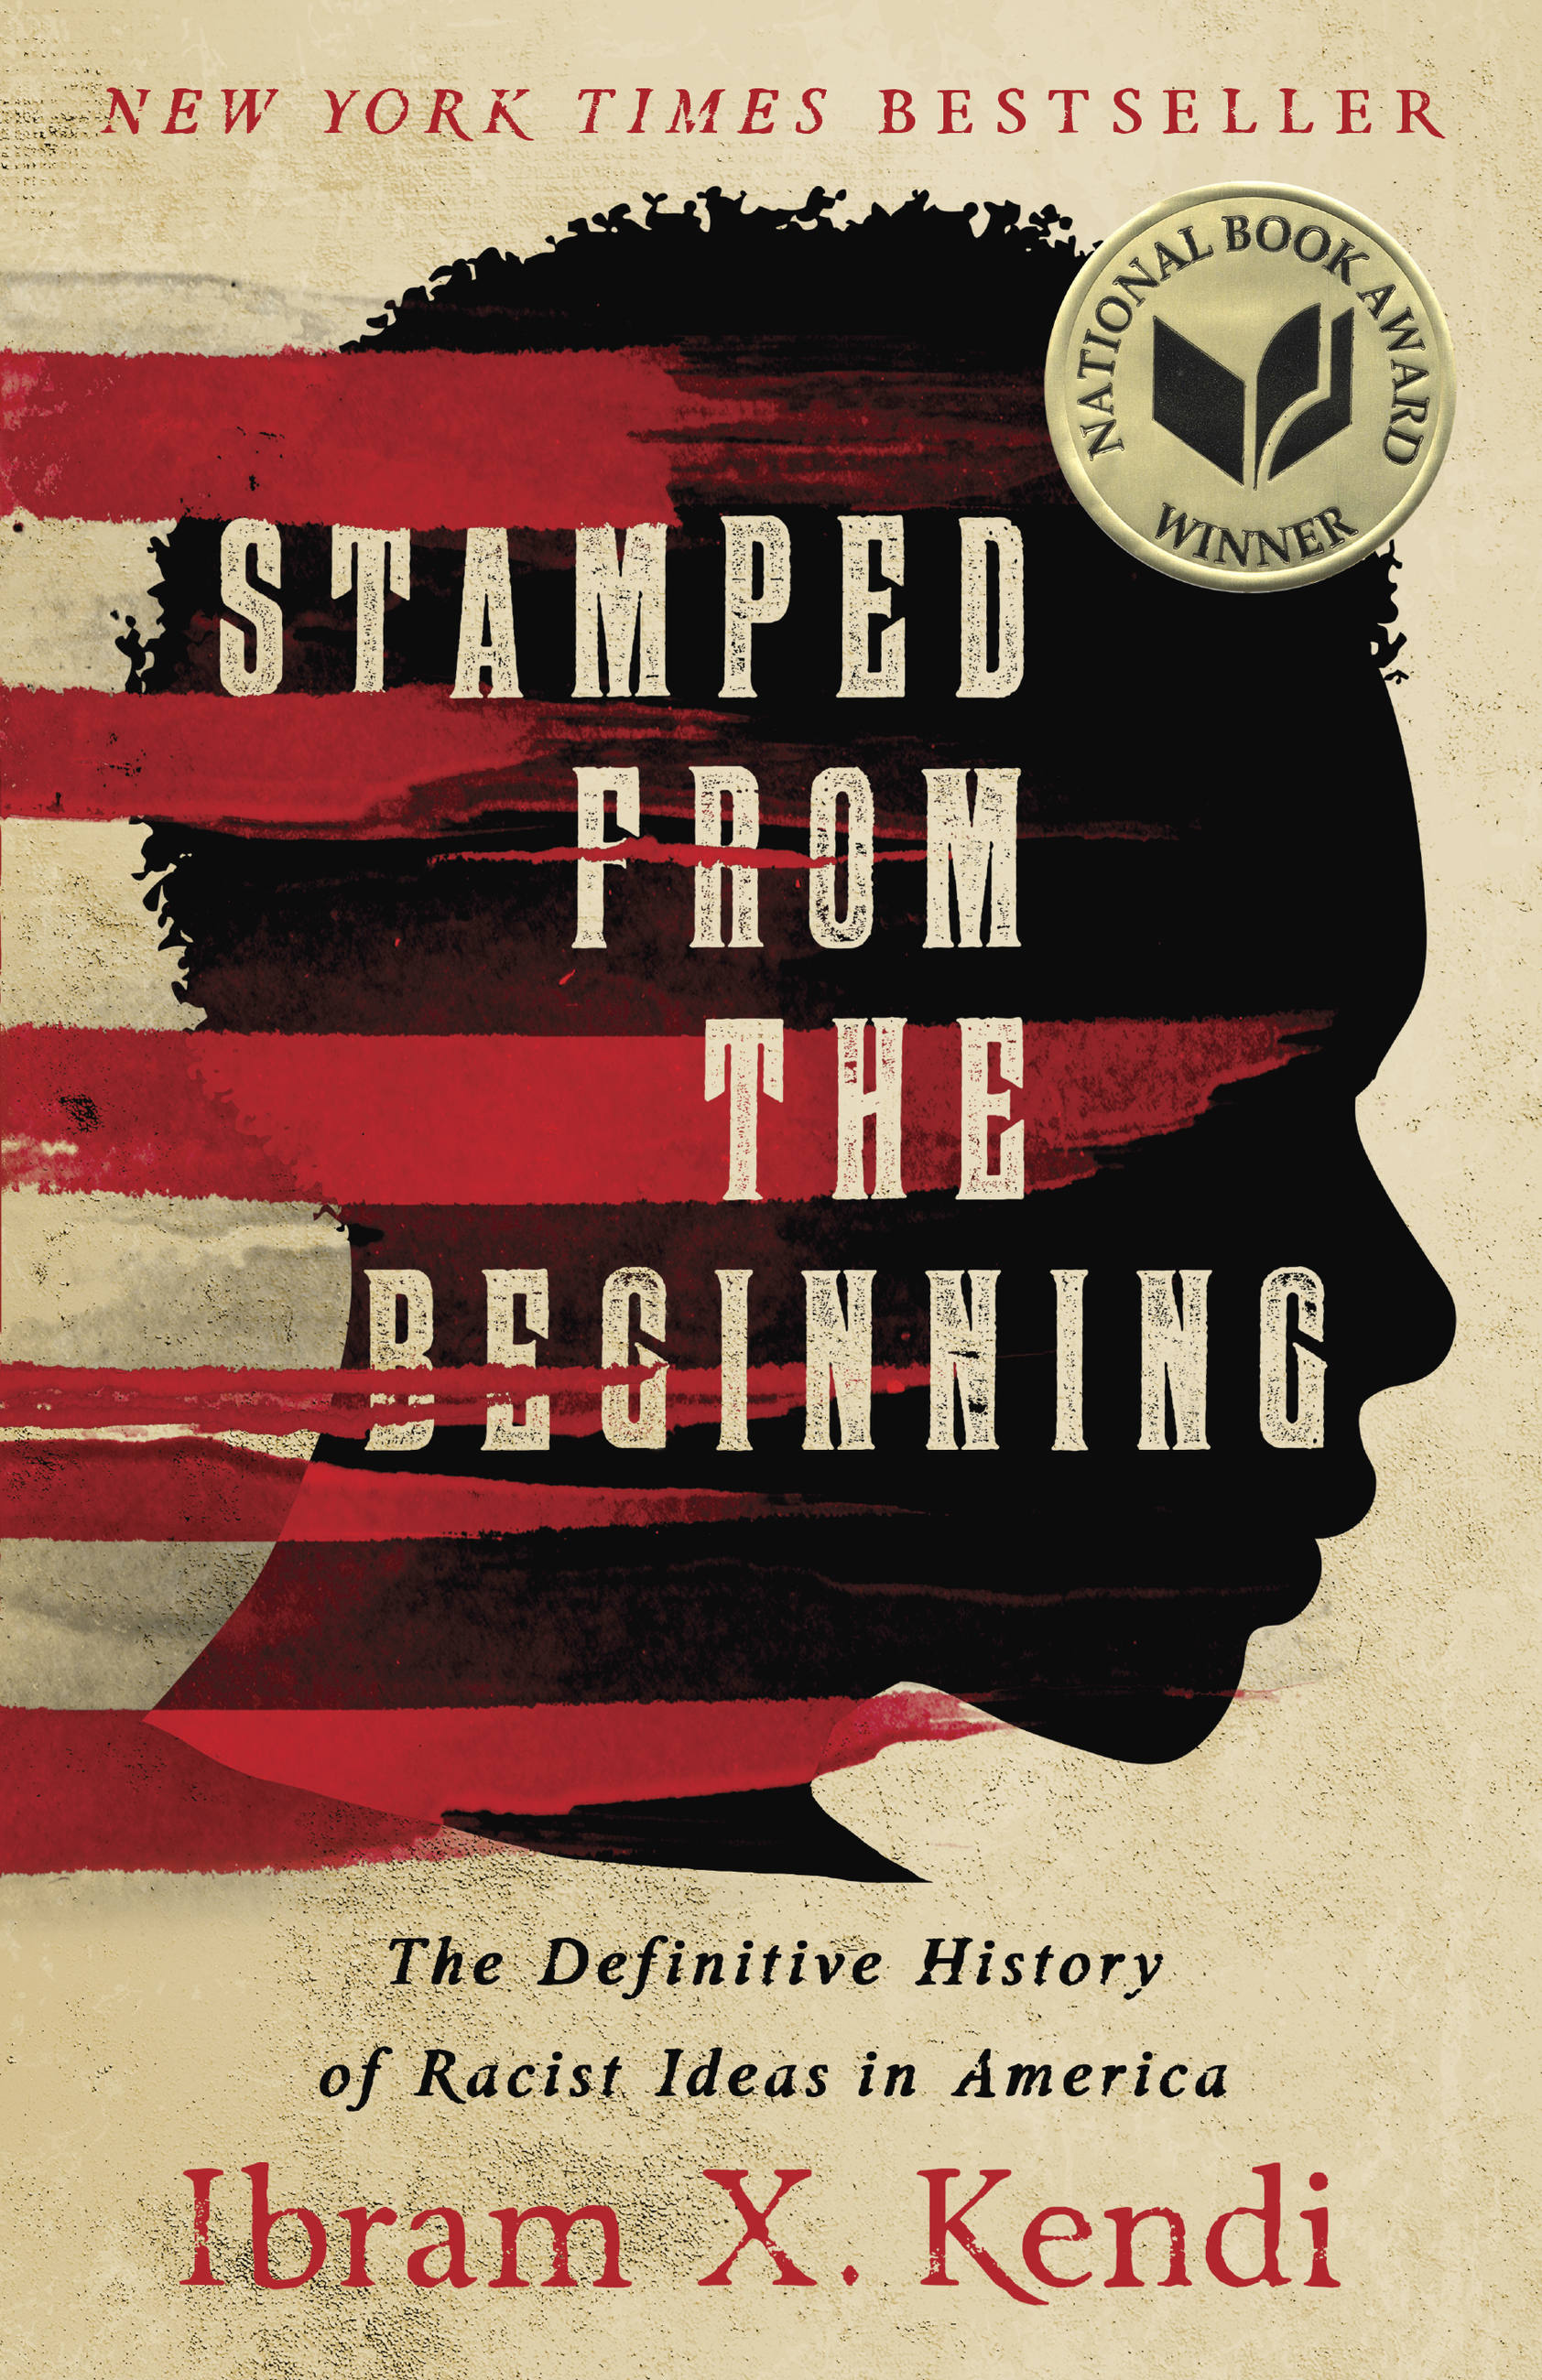 Stamped from the Beginning [electronic resource] : The Definitive History of Racist Ideas in America